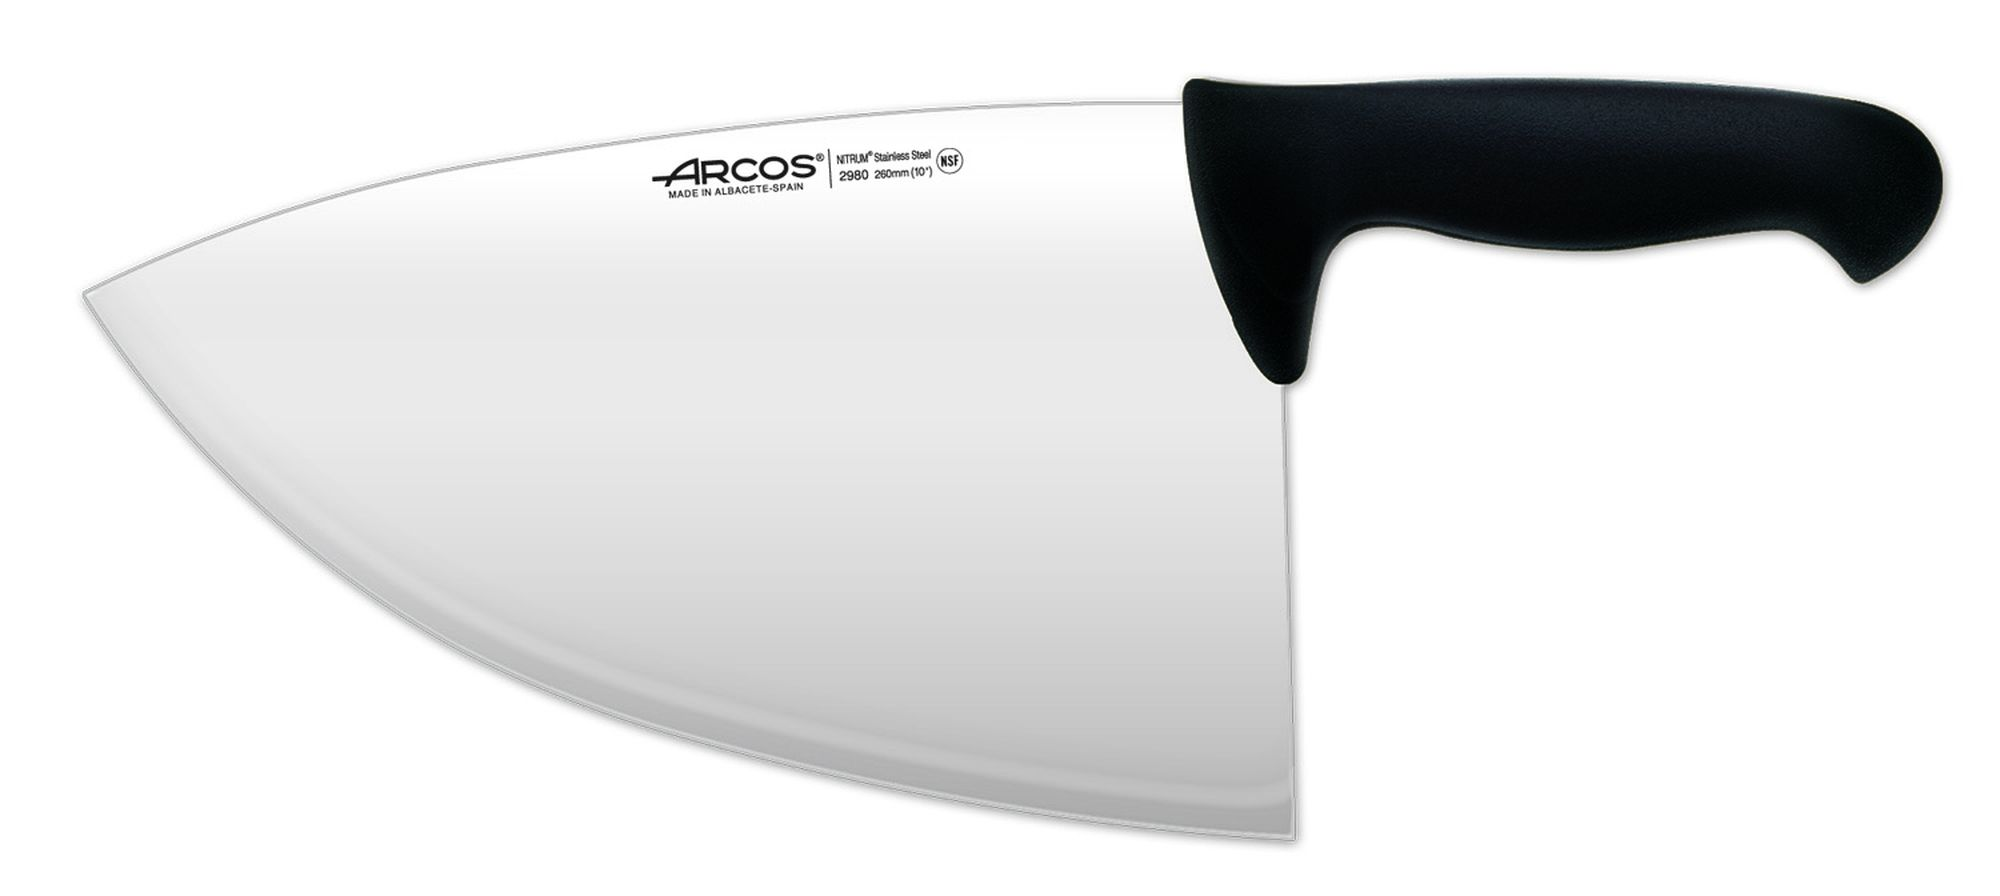 Cleaver Arcos ref.: 298025